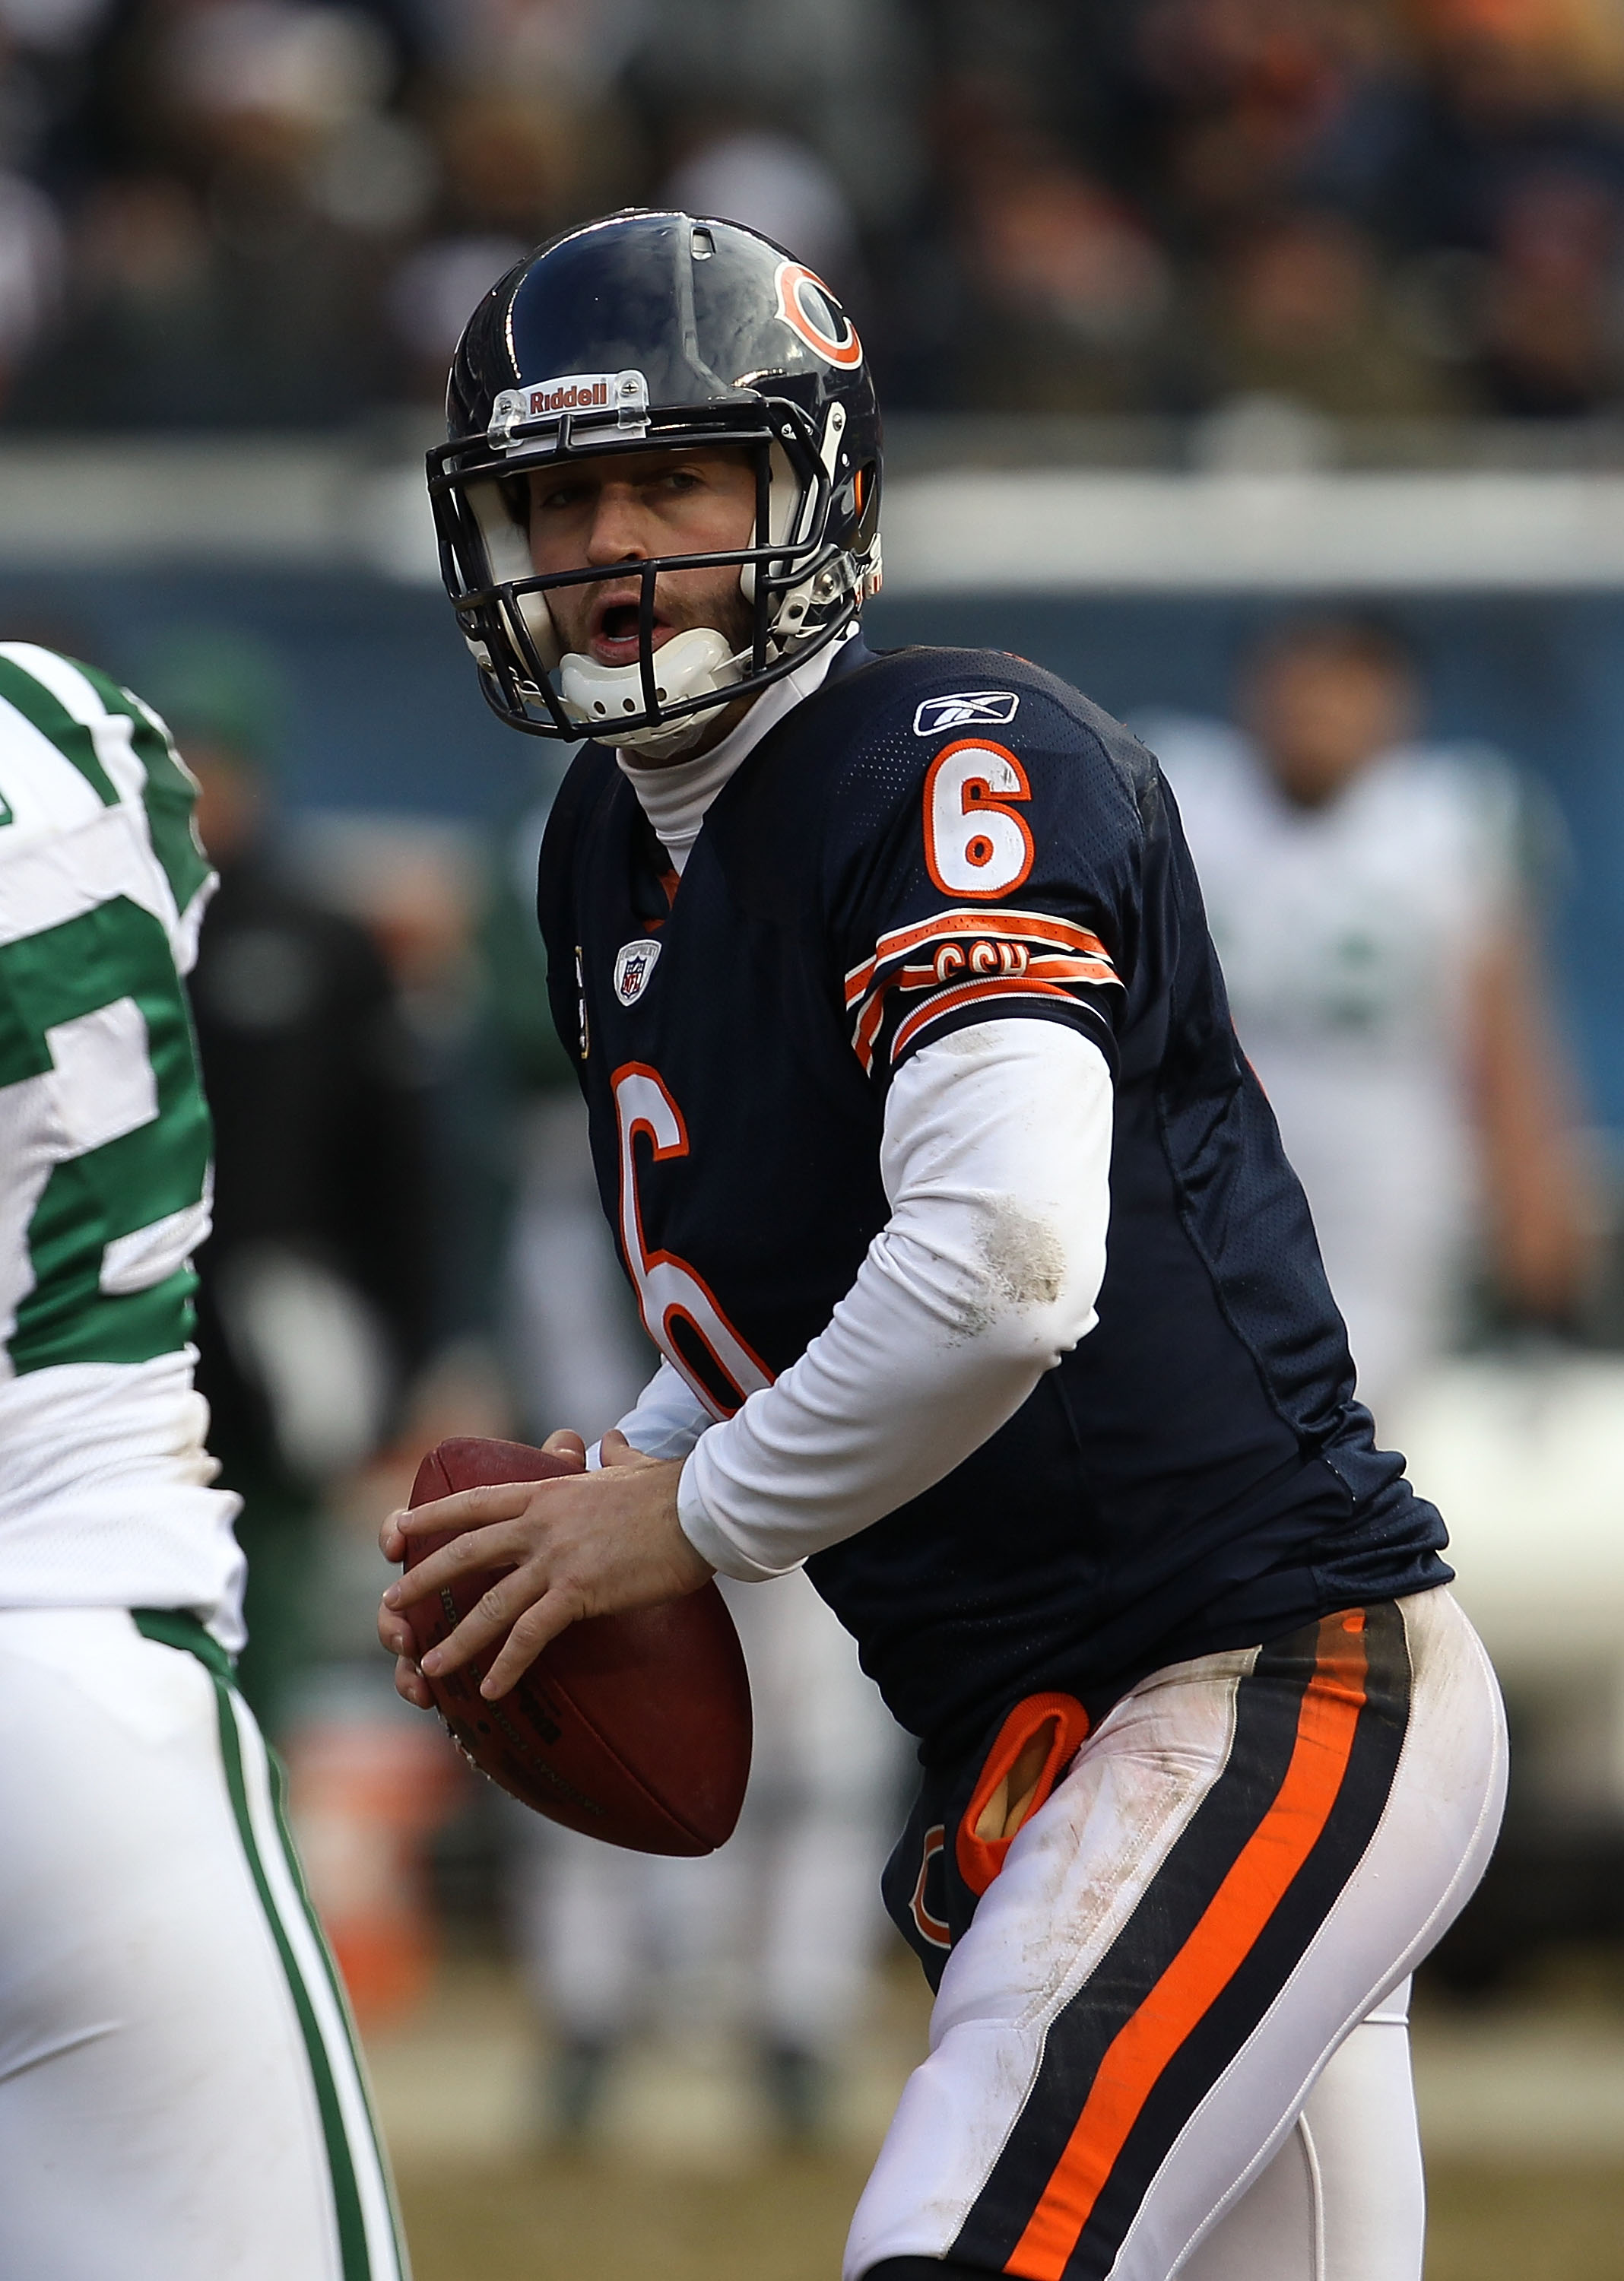 CHICAGO, IL - DECEMBER 26: Jay Cutler #6 of the Chicago Bears looks for a receiver against the New York Jets at Soldier Field on December 26, 2010 in Chicago, Illinois. The Bears defeated the Jets 38-34.  (Photo by Jonathan Daniel/Getty Images)